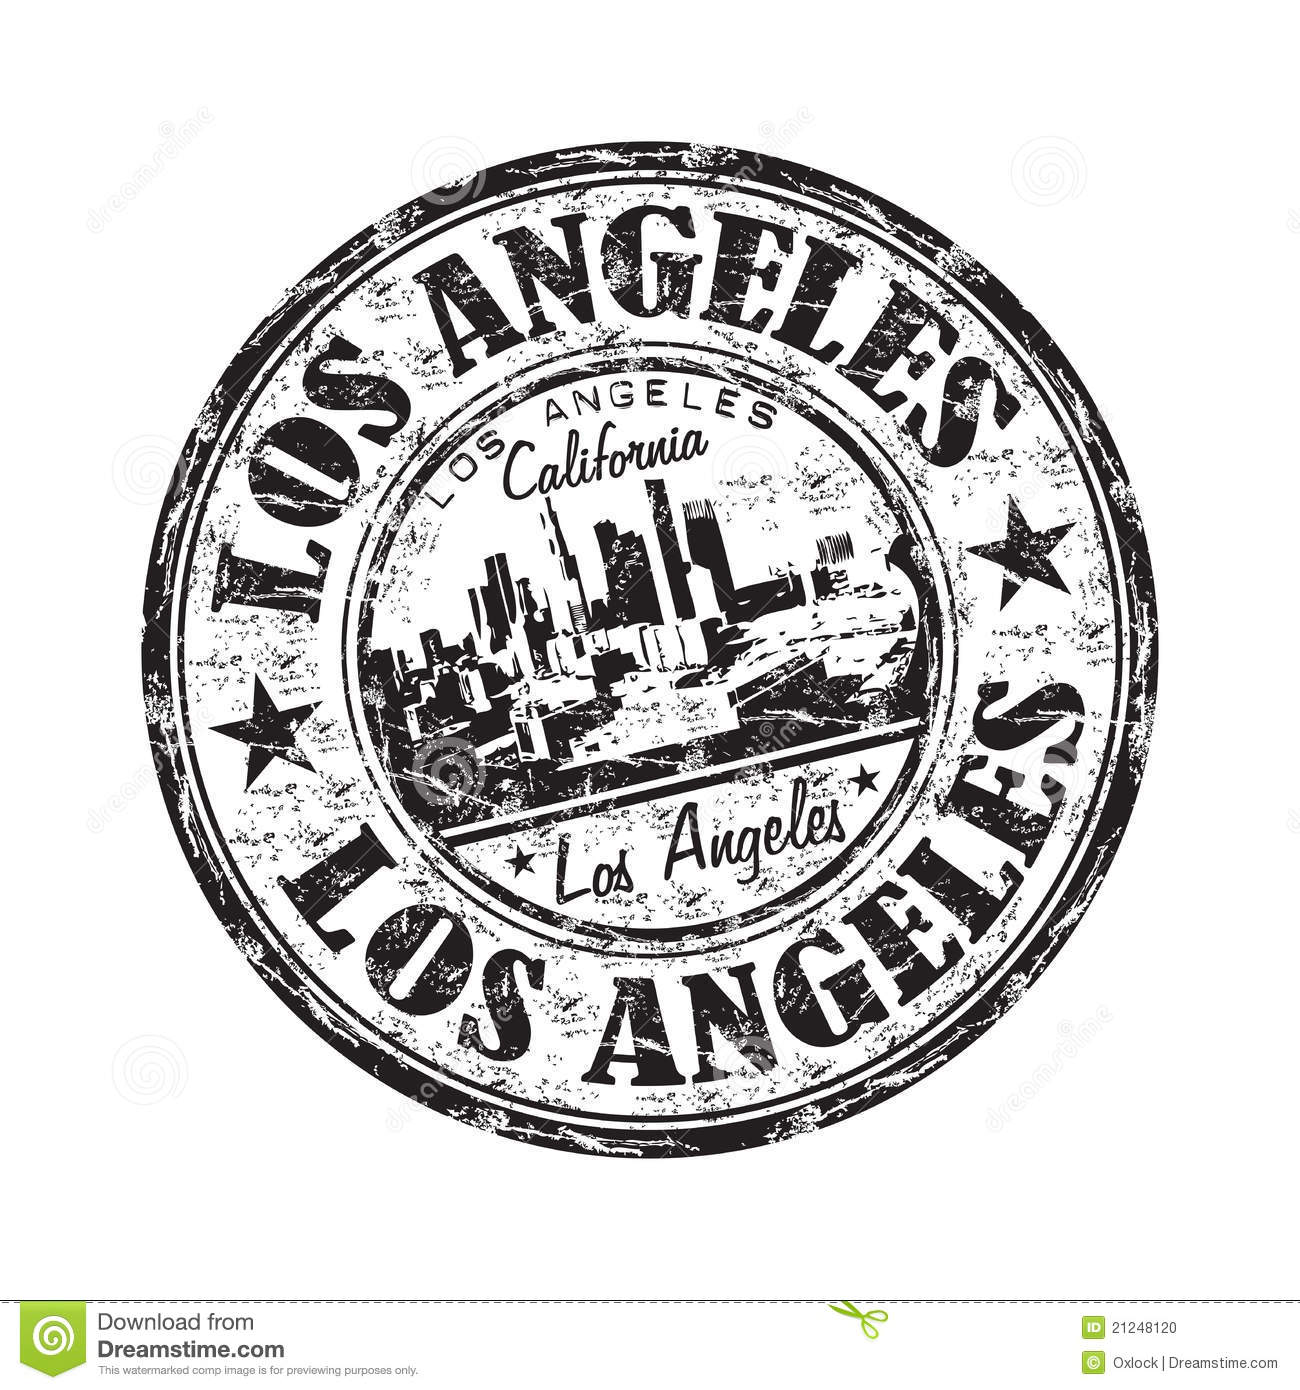 Eastown Apartments besides Los Angeles Ca as well Juan Downey Radiant Nature in addition Rohnert park furthermore Hollywood walk of fame. on hollywood blvd los angeles california